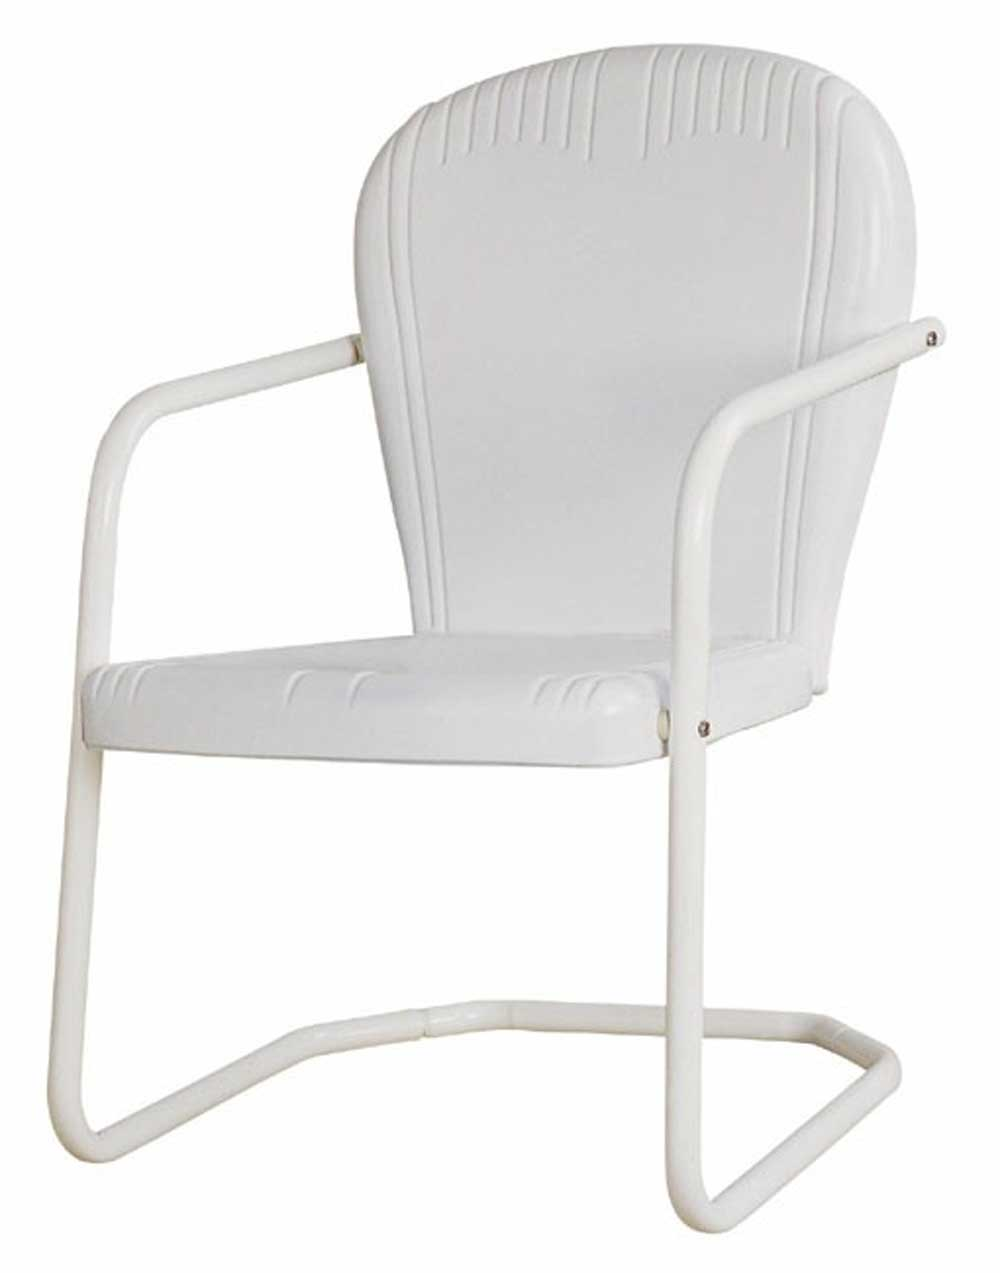 Modern White Steel Lawn Chair for Outdoor